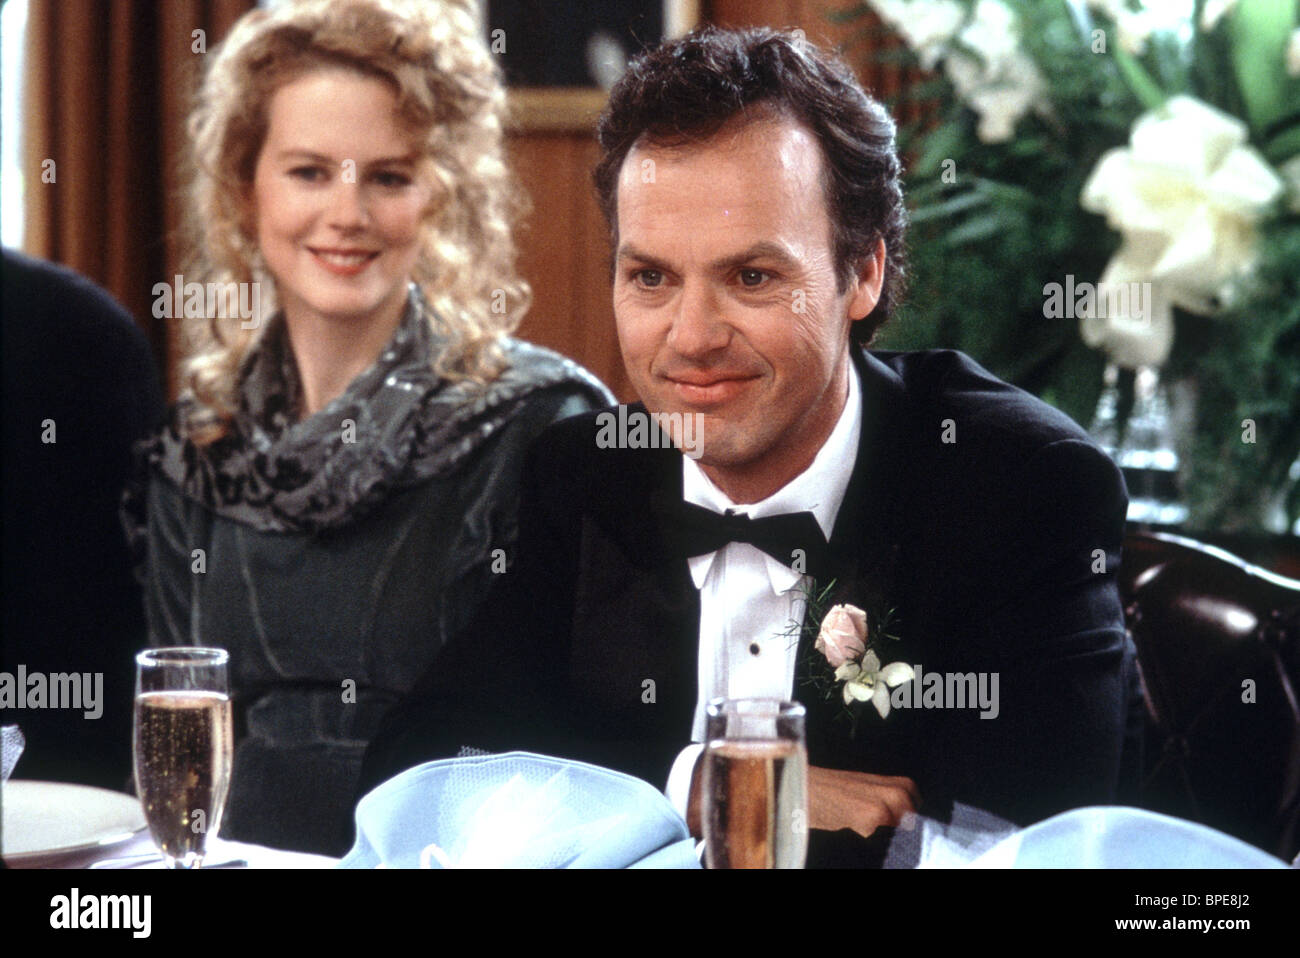 Image result for my life michael keaton